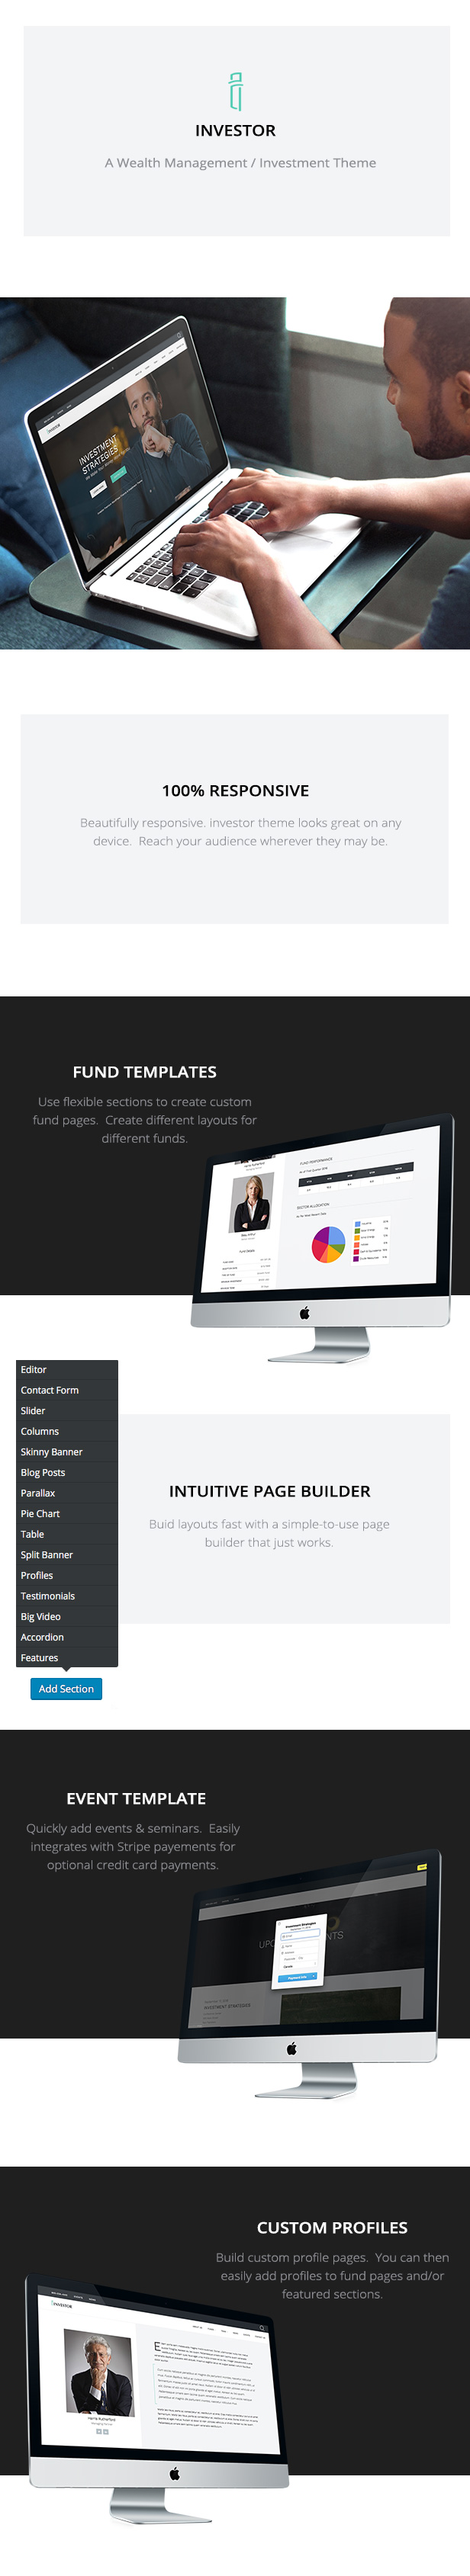 Investor - Wealth Management Theme - 1